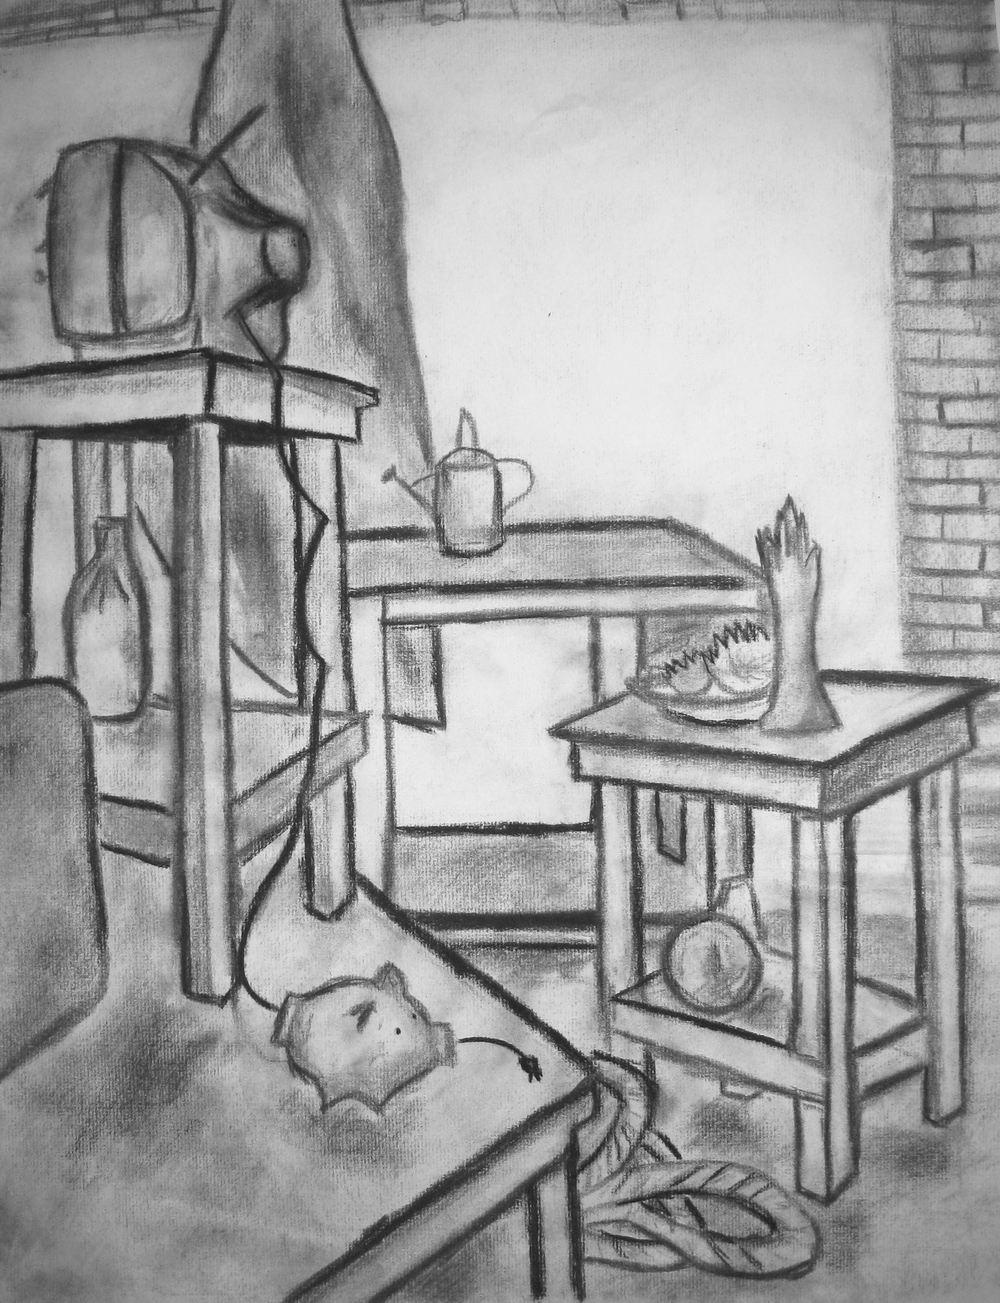 Still Life, Charcoal, 2010